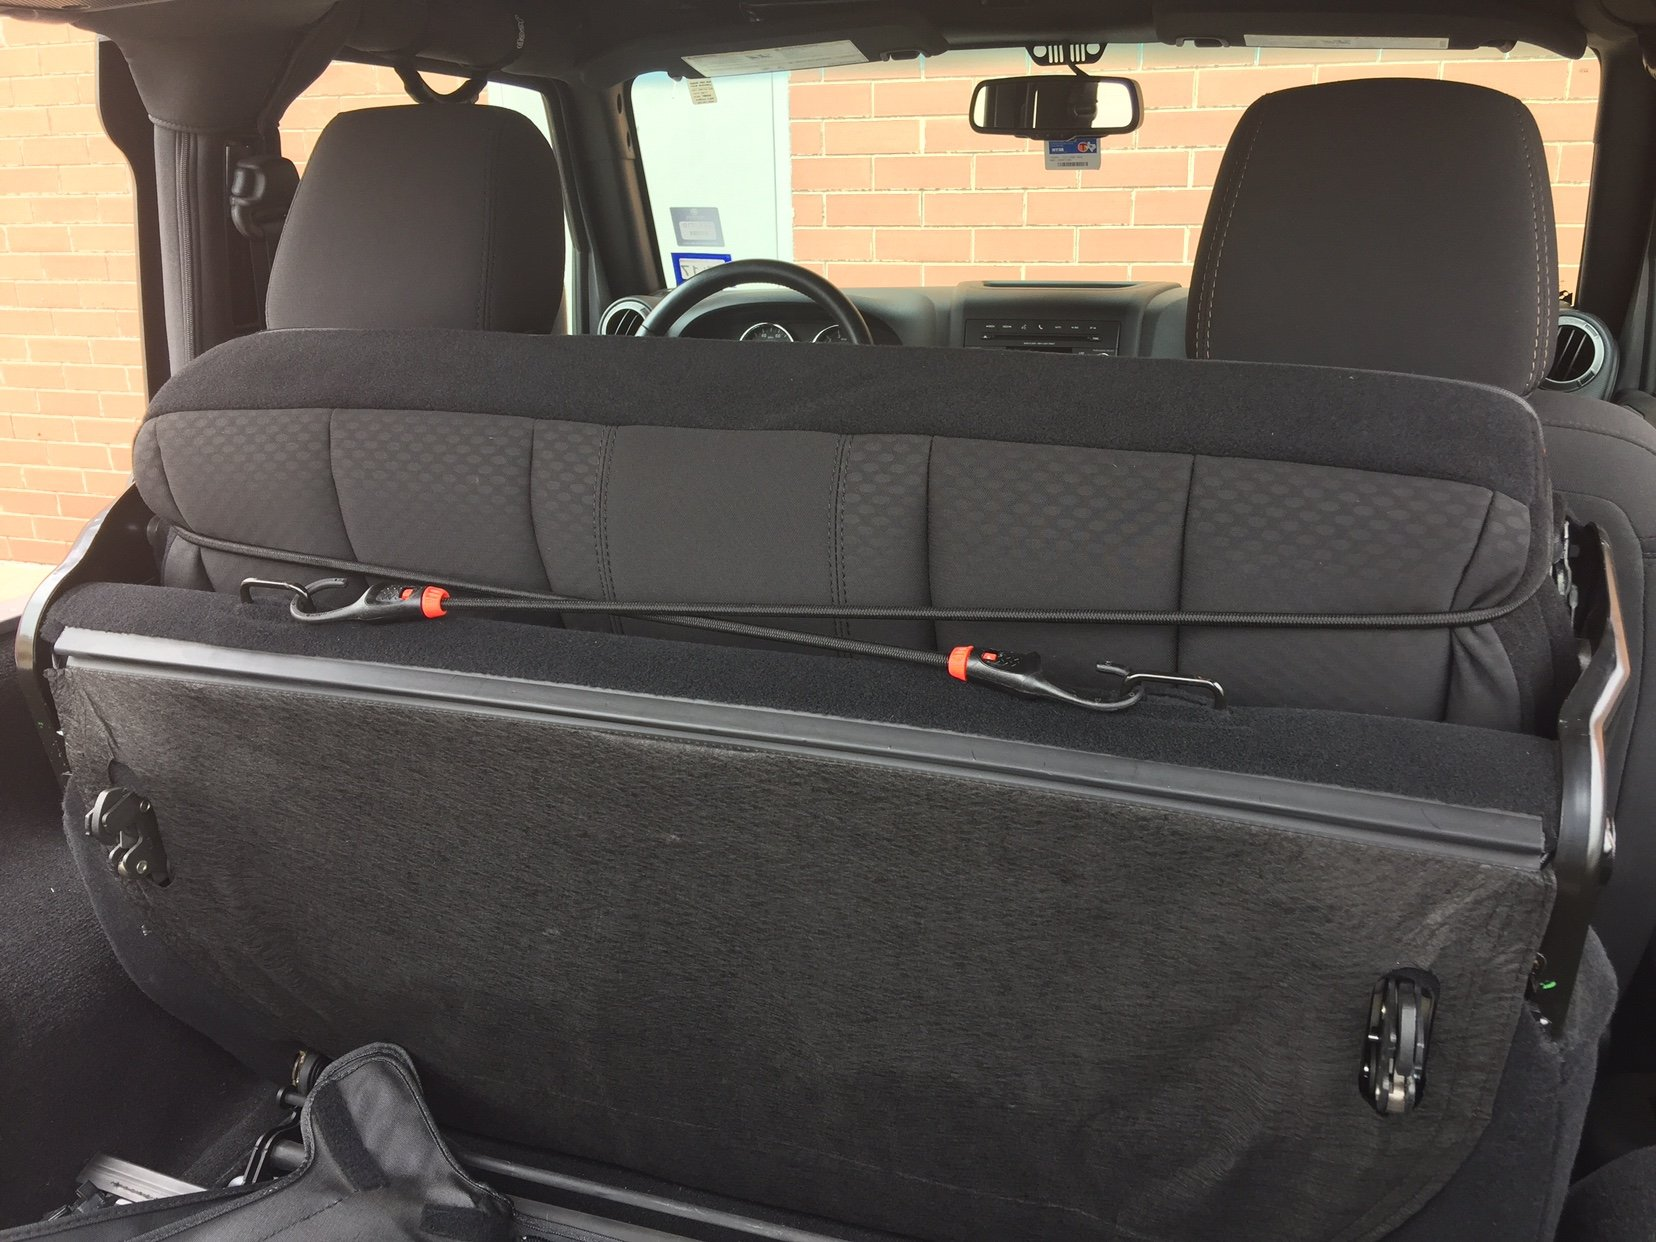 Jeep Wrangler Seat Covers >> How many JK owners remove the rear seat? - Jeep Wrangler Forum